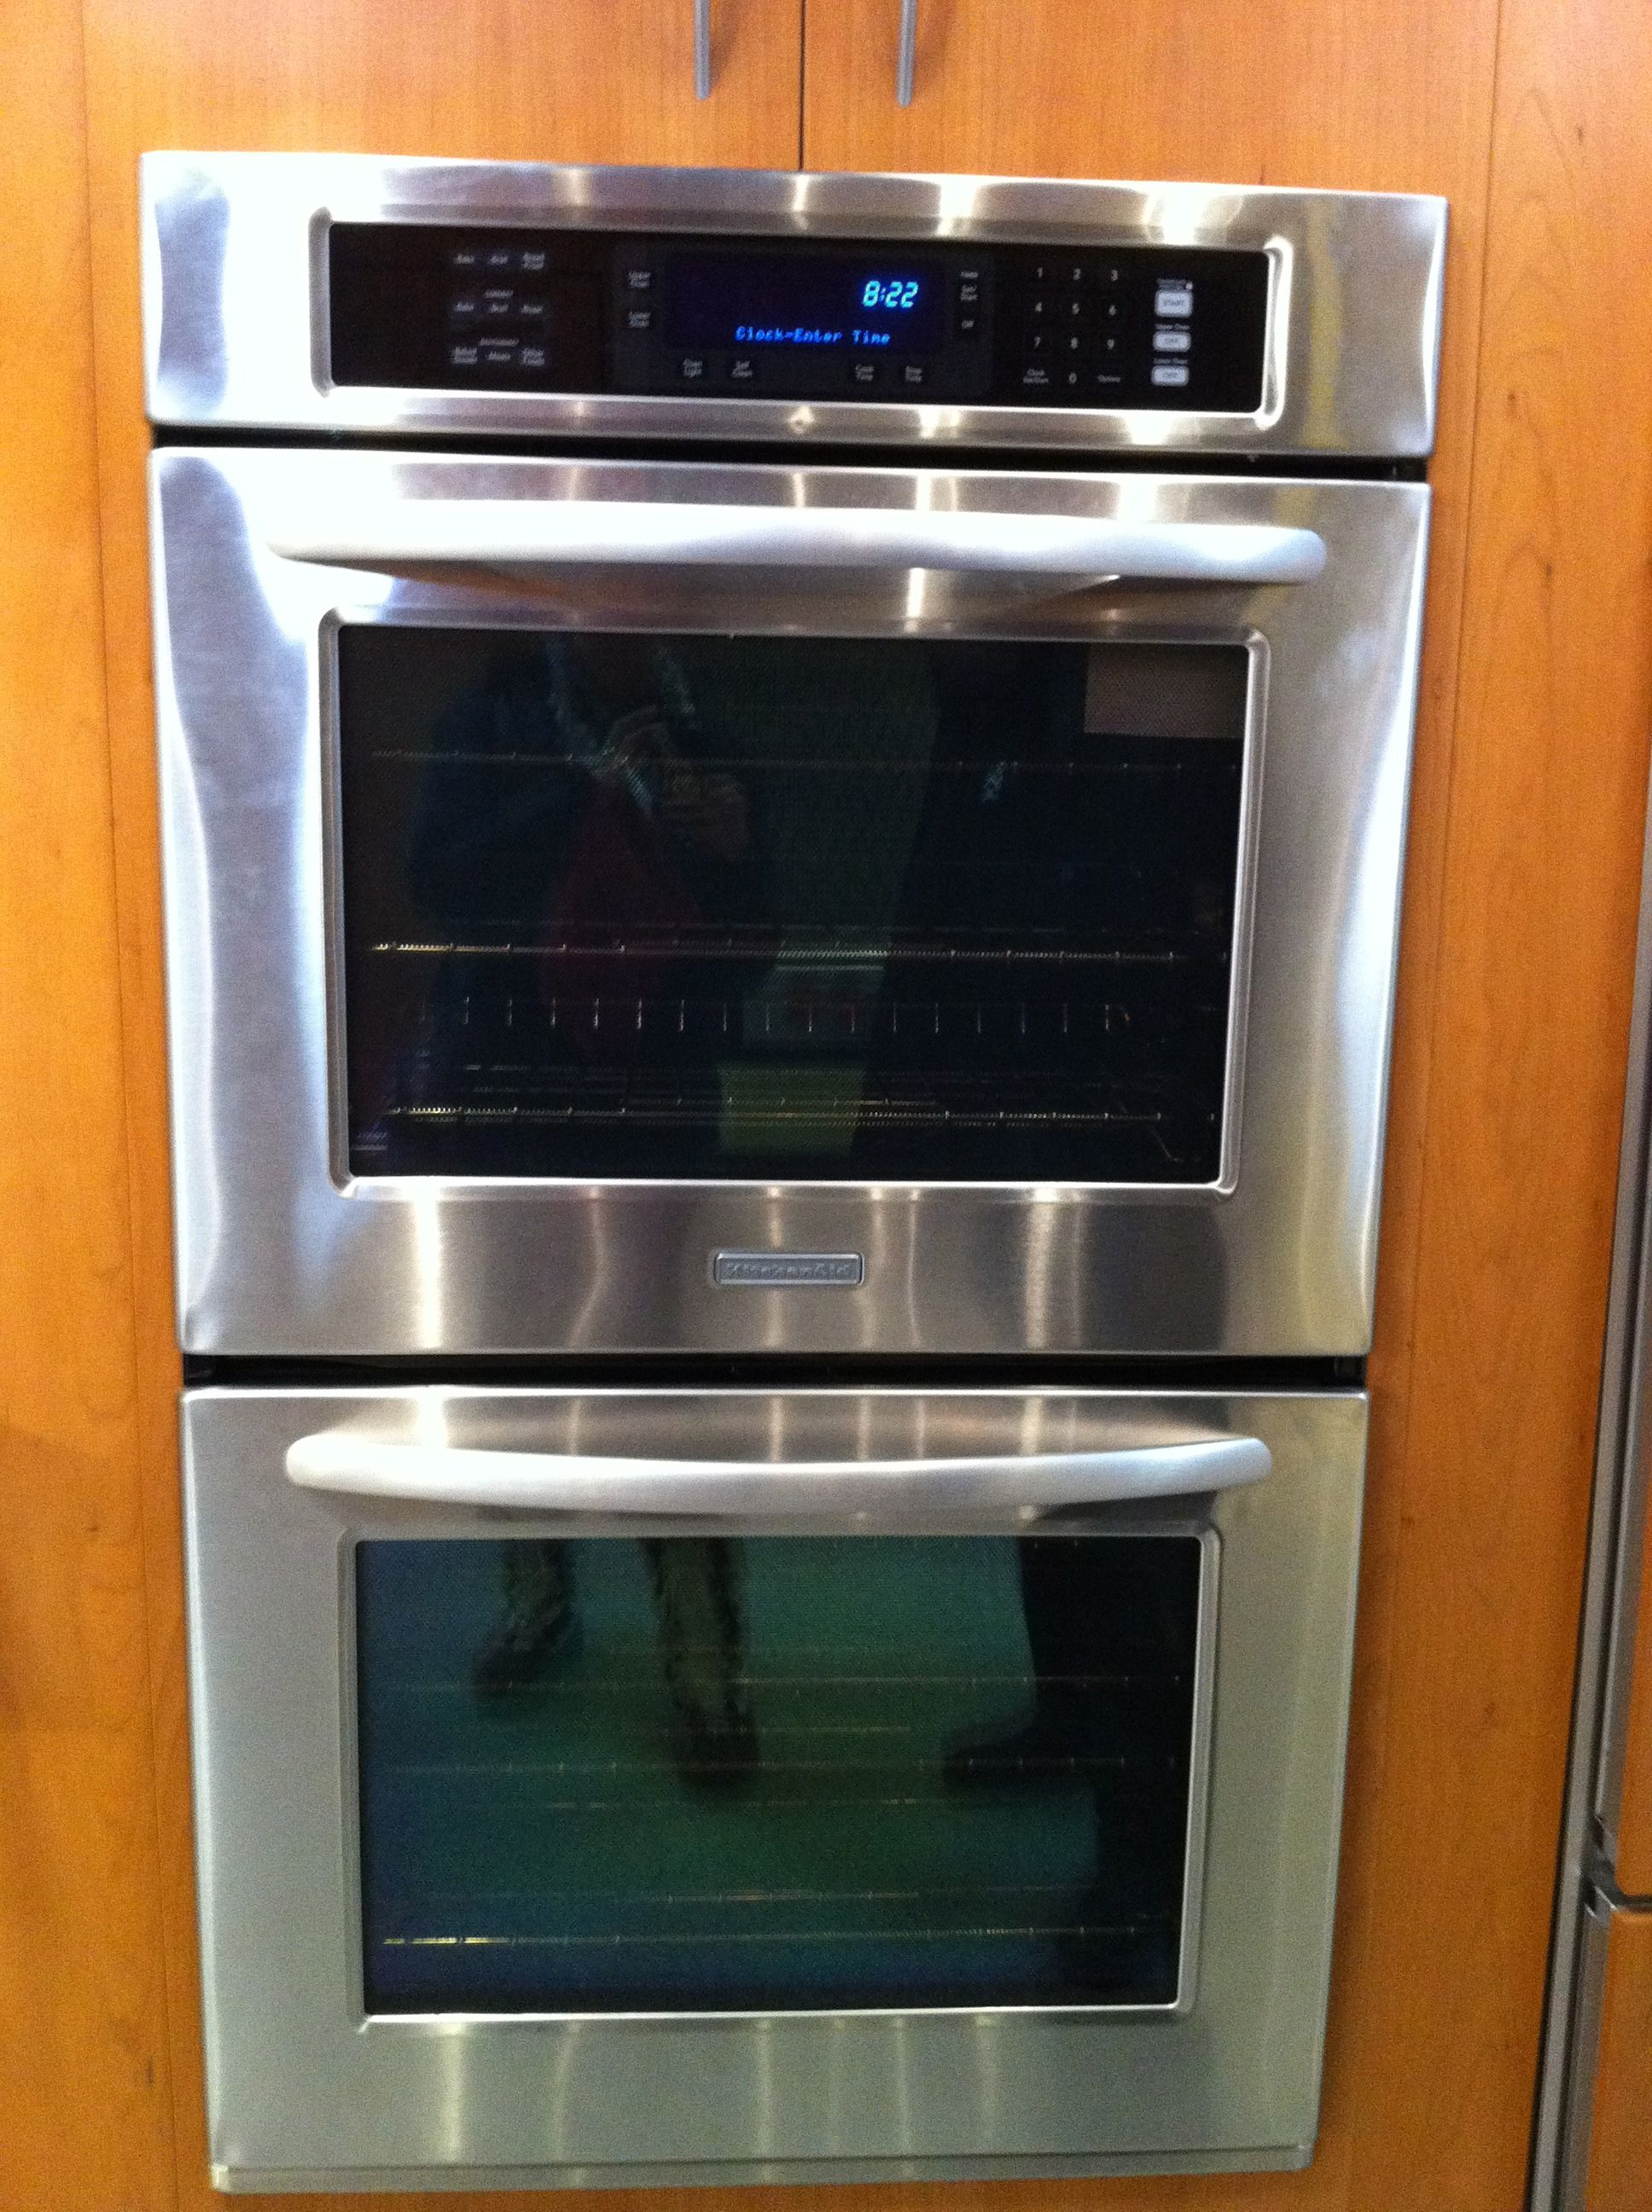 Superieur Kitchenaid Double Wall Oven *drool*